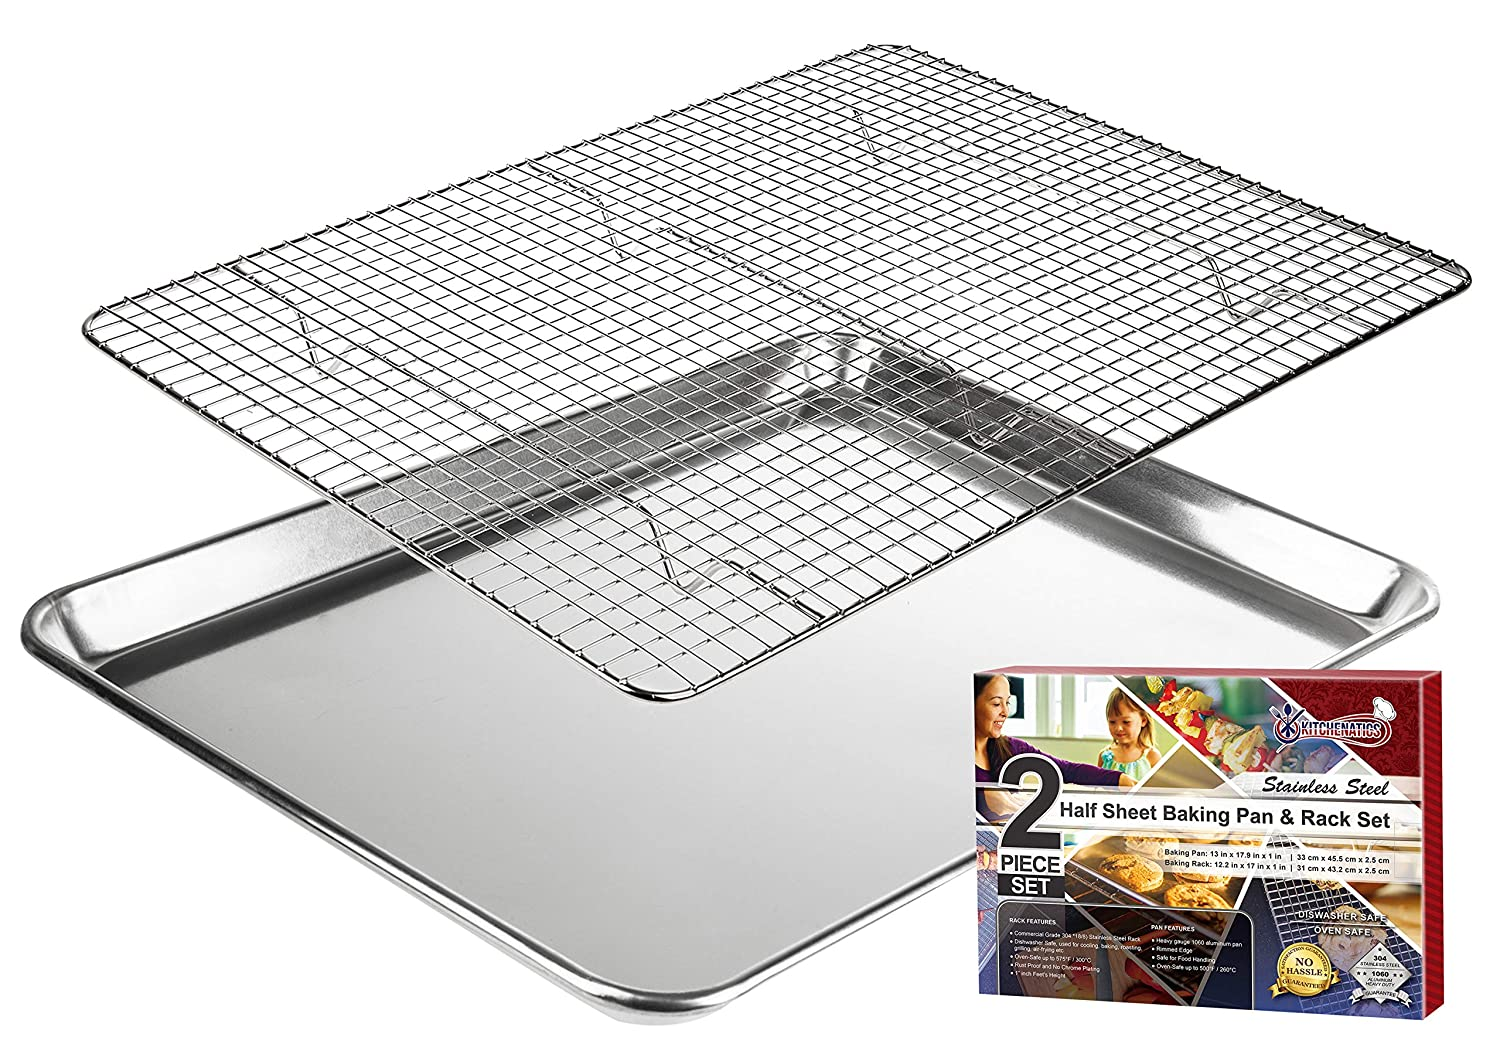 "KITCHENATICS Baking Sheet with Cooling Rack: Half Aluminum Cookie Pan Tray with Stainless Steel Wire and Roasting Rack - 13.1"" x 17.9"", Heavy Duty Commercial Quality"